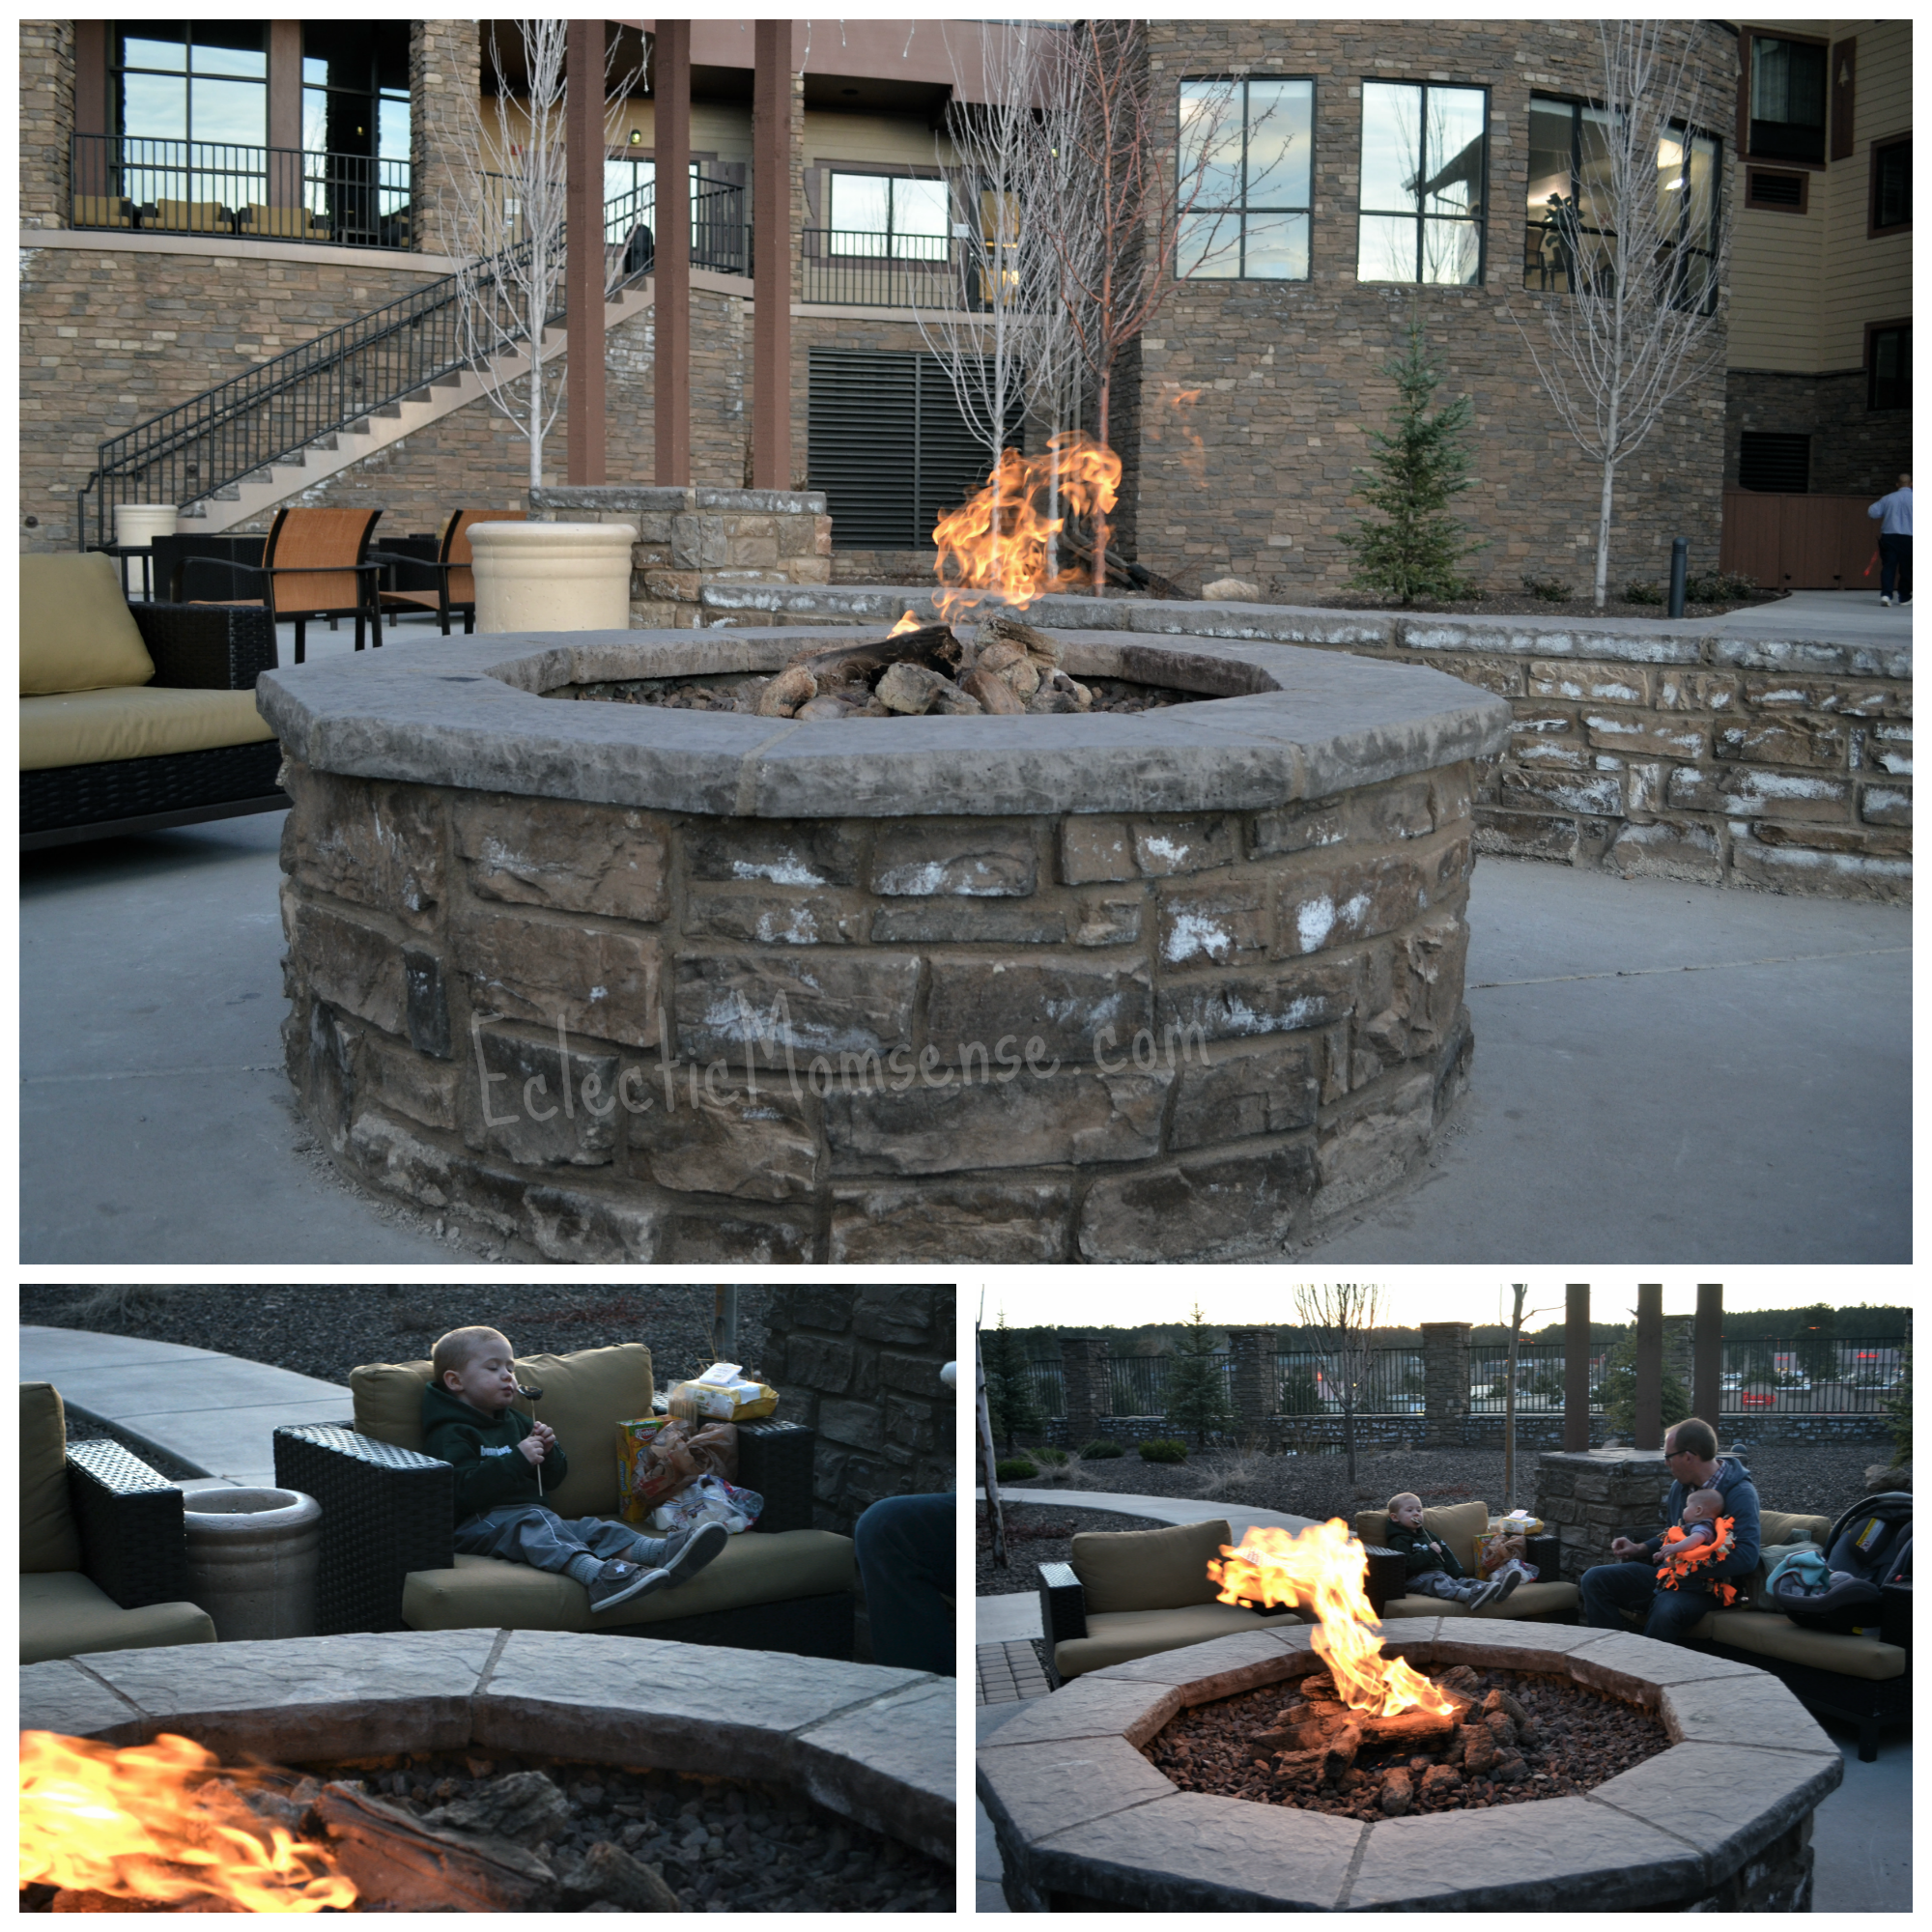 Eclectic Momsense- Local getaways and travel with #ad Marriott Courtyard Flagstaff